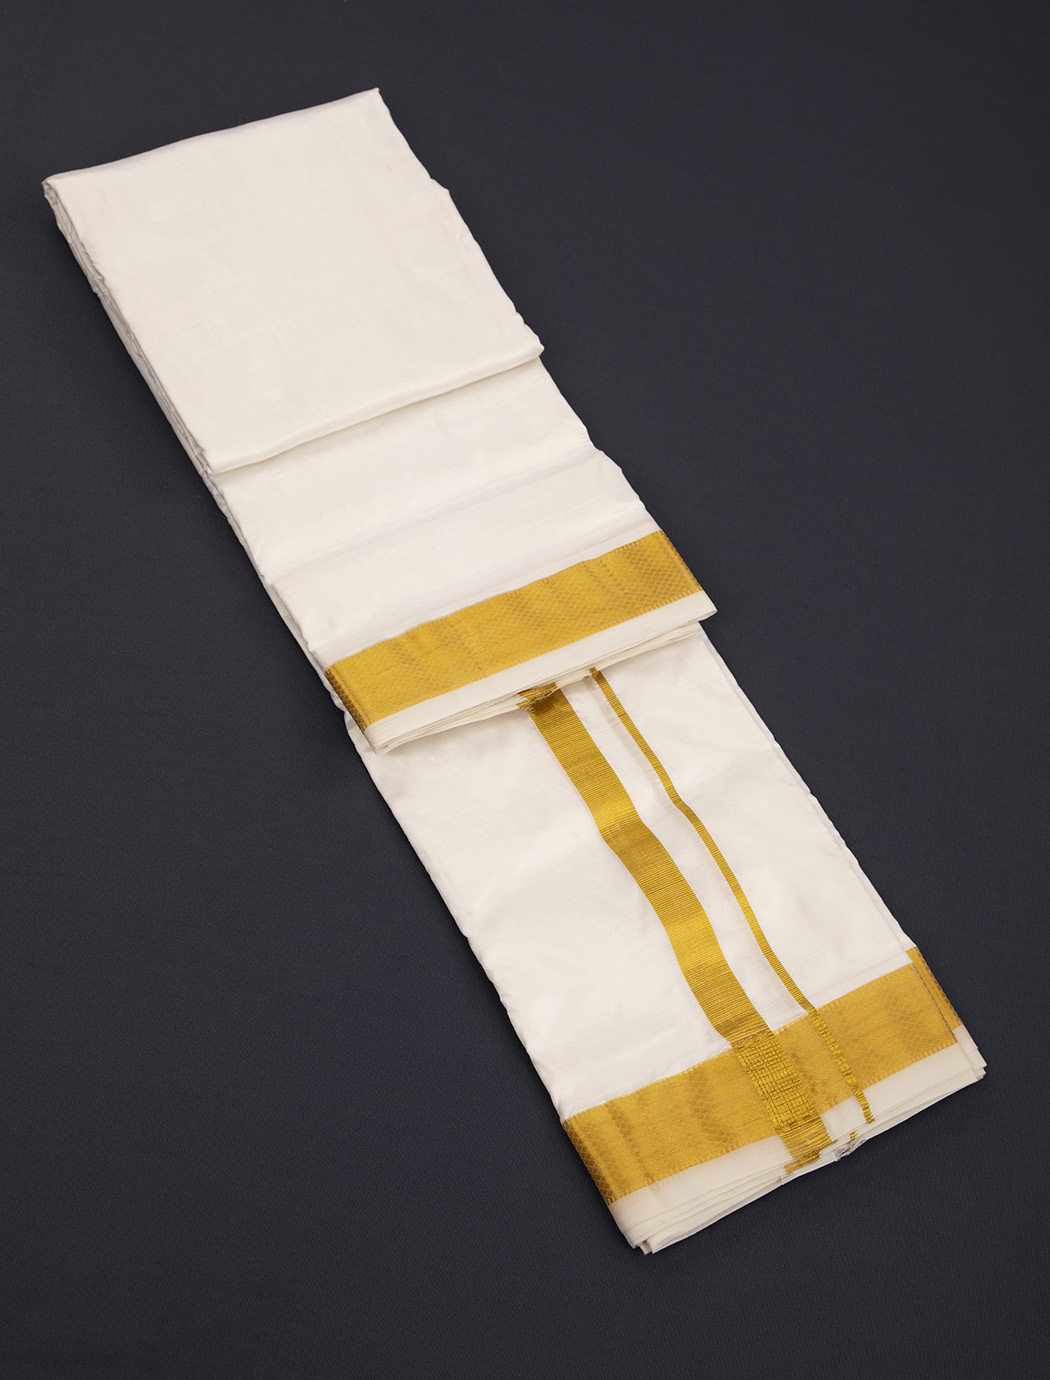 Snow White Handloom Pure Silk Dhoti with Golden Squares Weaving Pattern